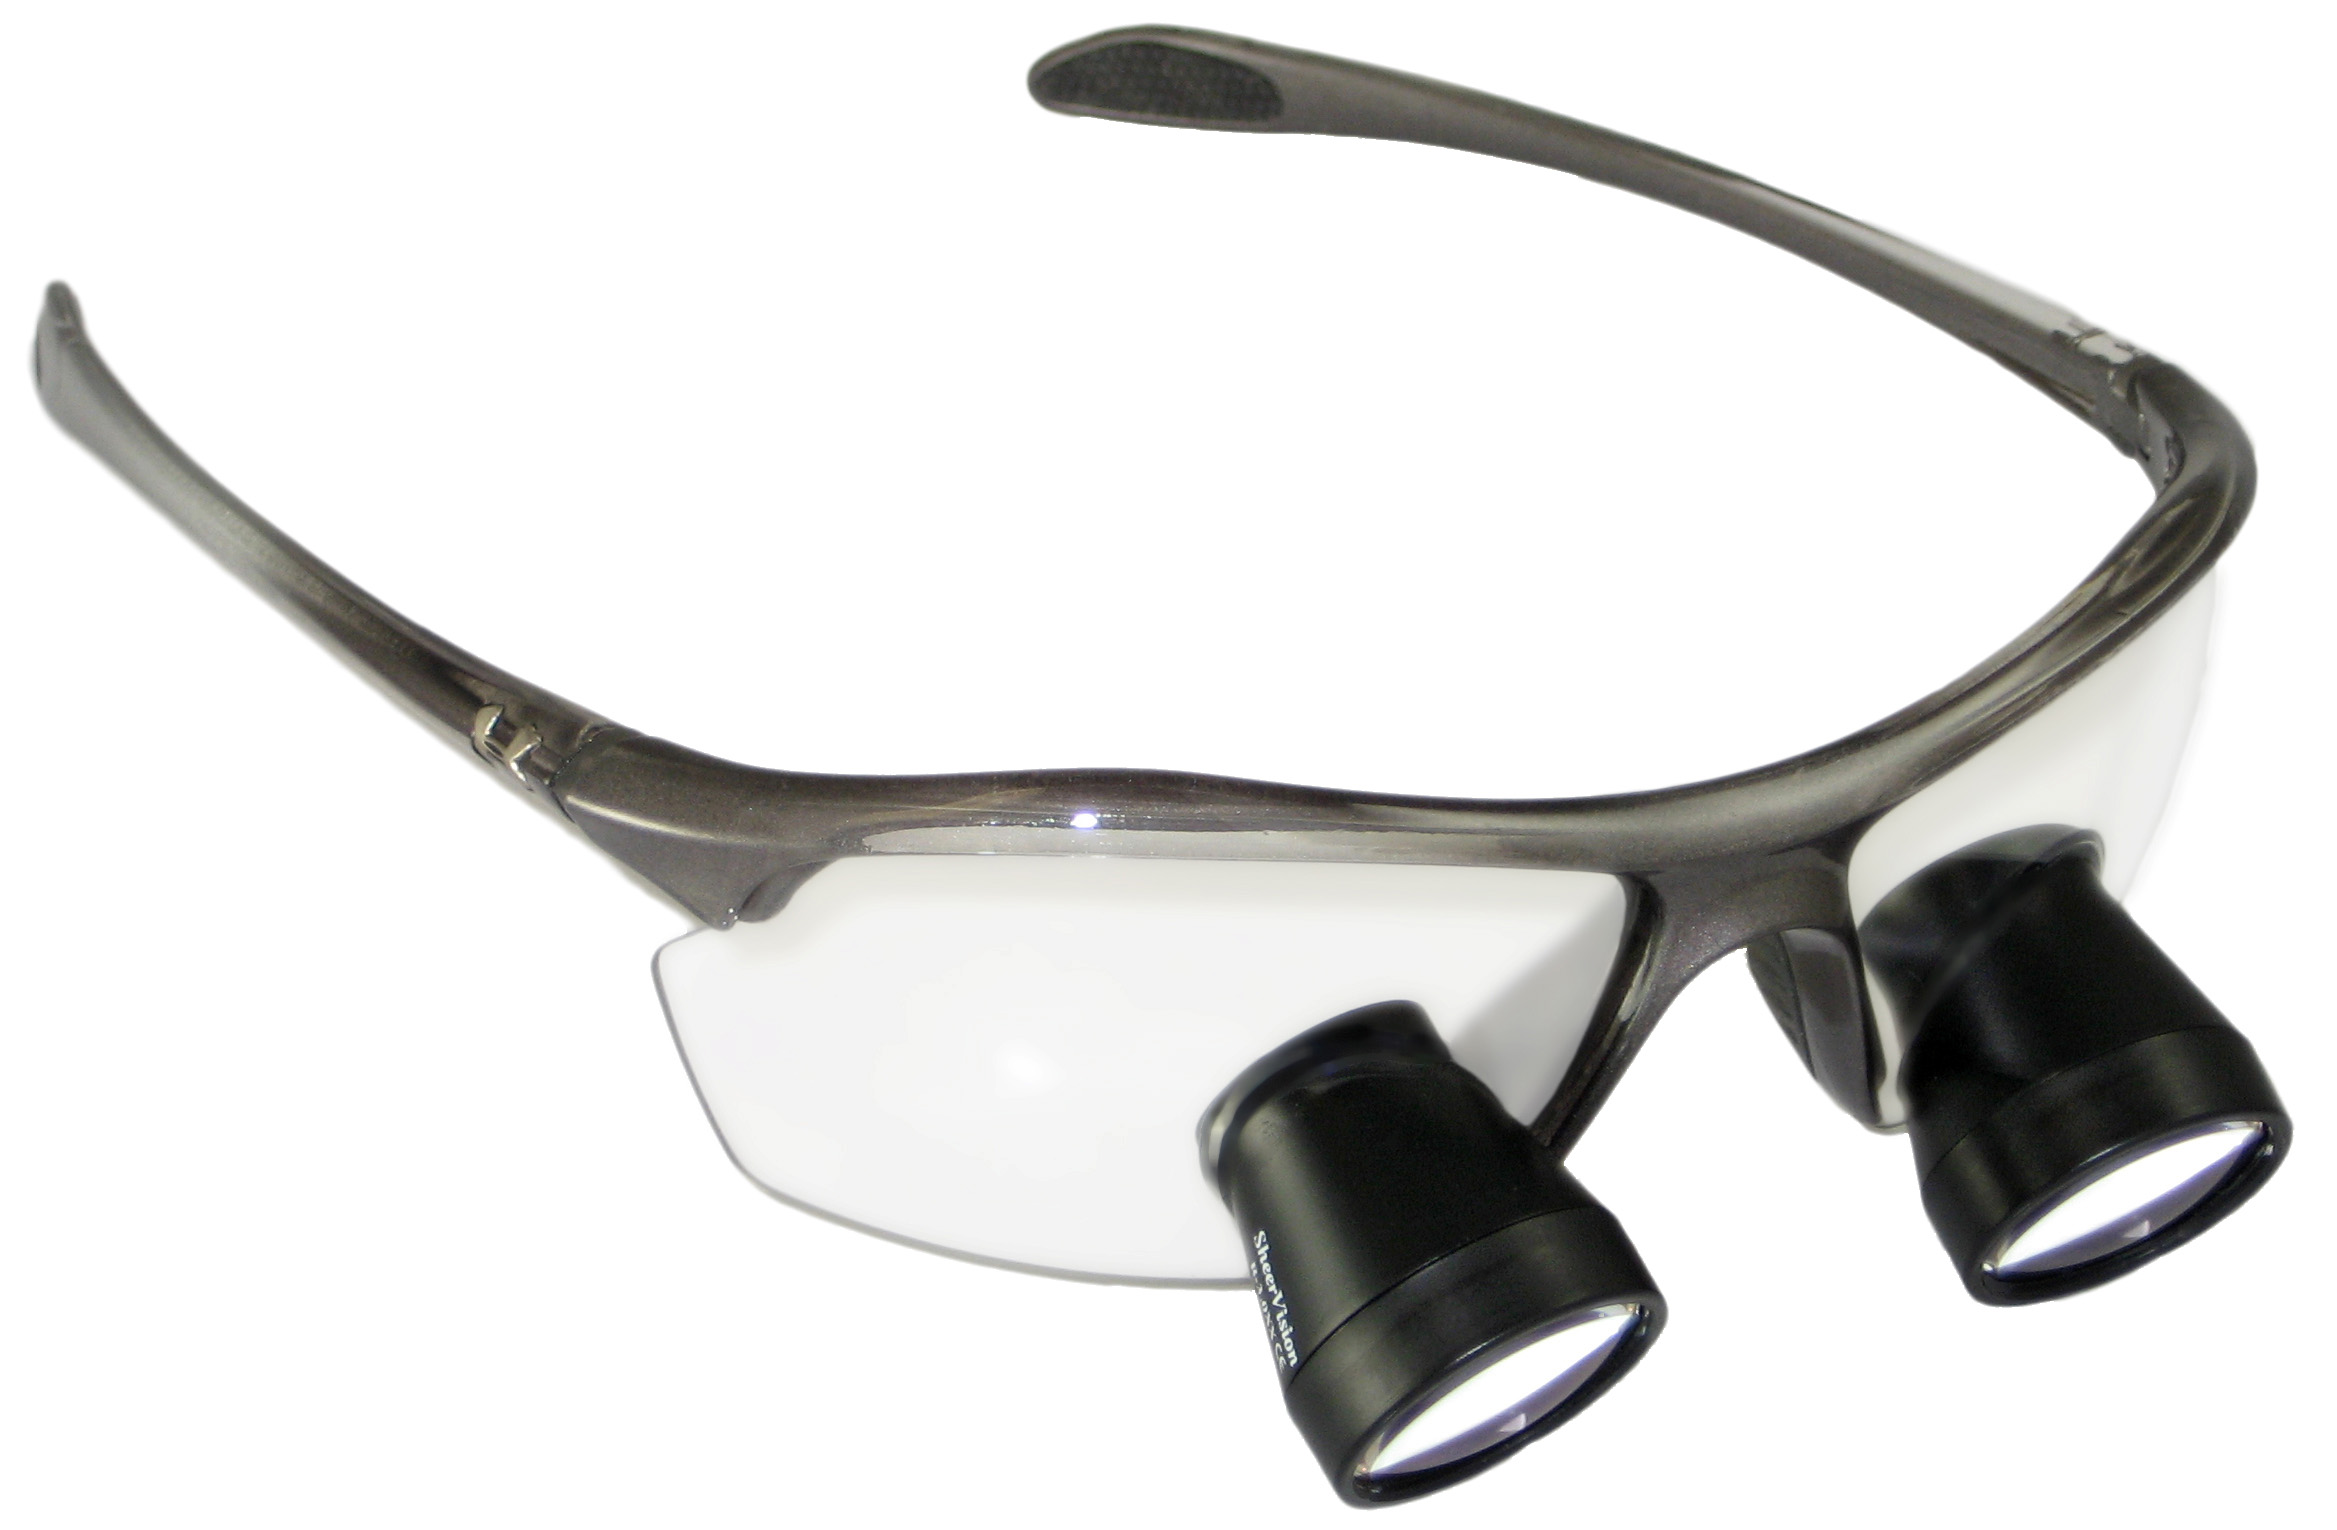 59a68c59f78 Patterson Dental now exclusively offers the latest high-performance loupe  optics from SheerVision who have teamed with Under Armour Performance  Eyewear ...